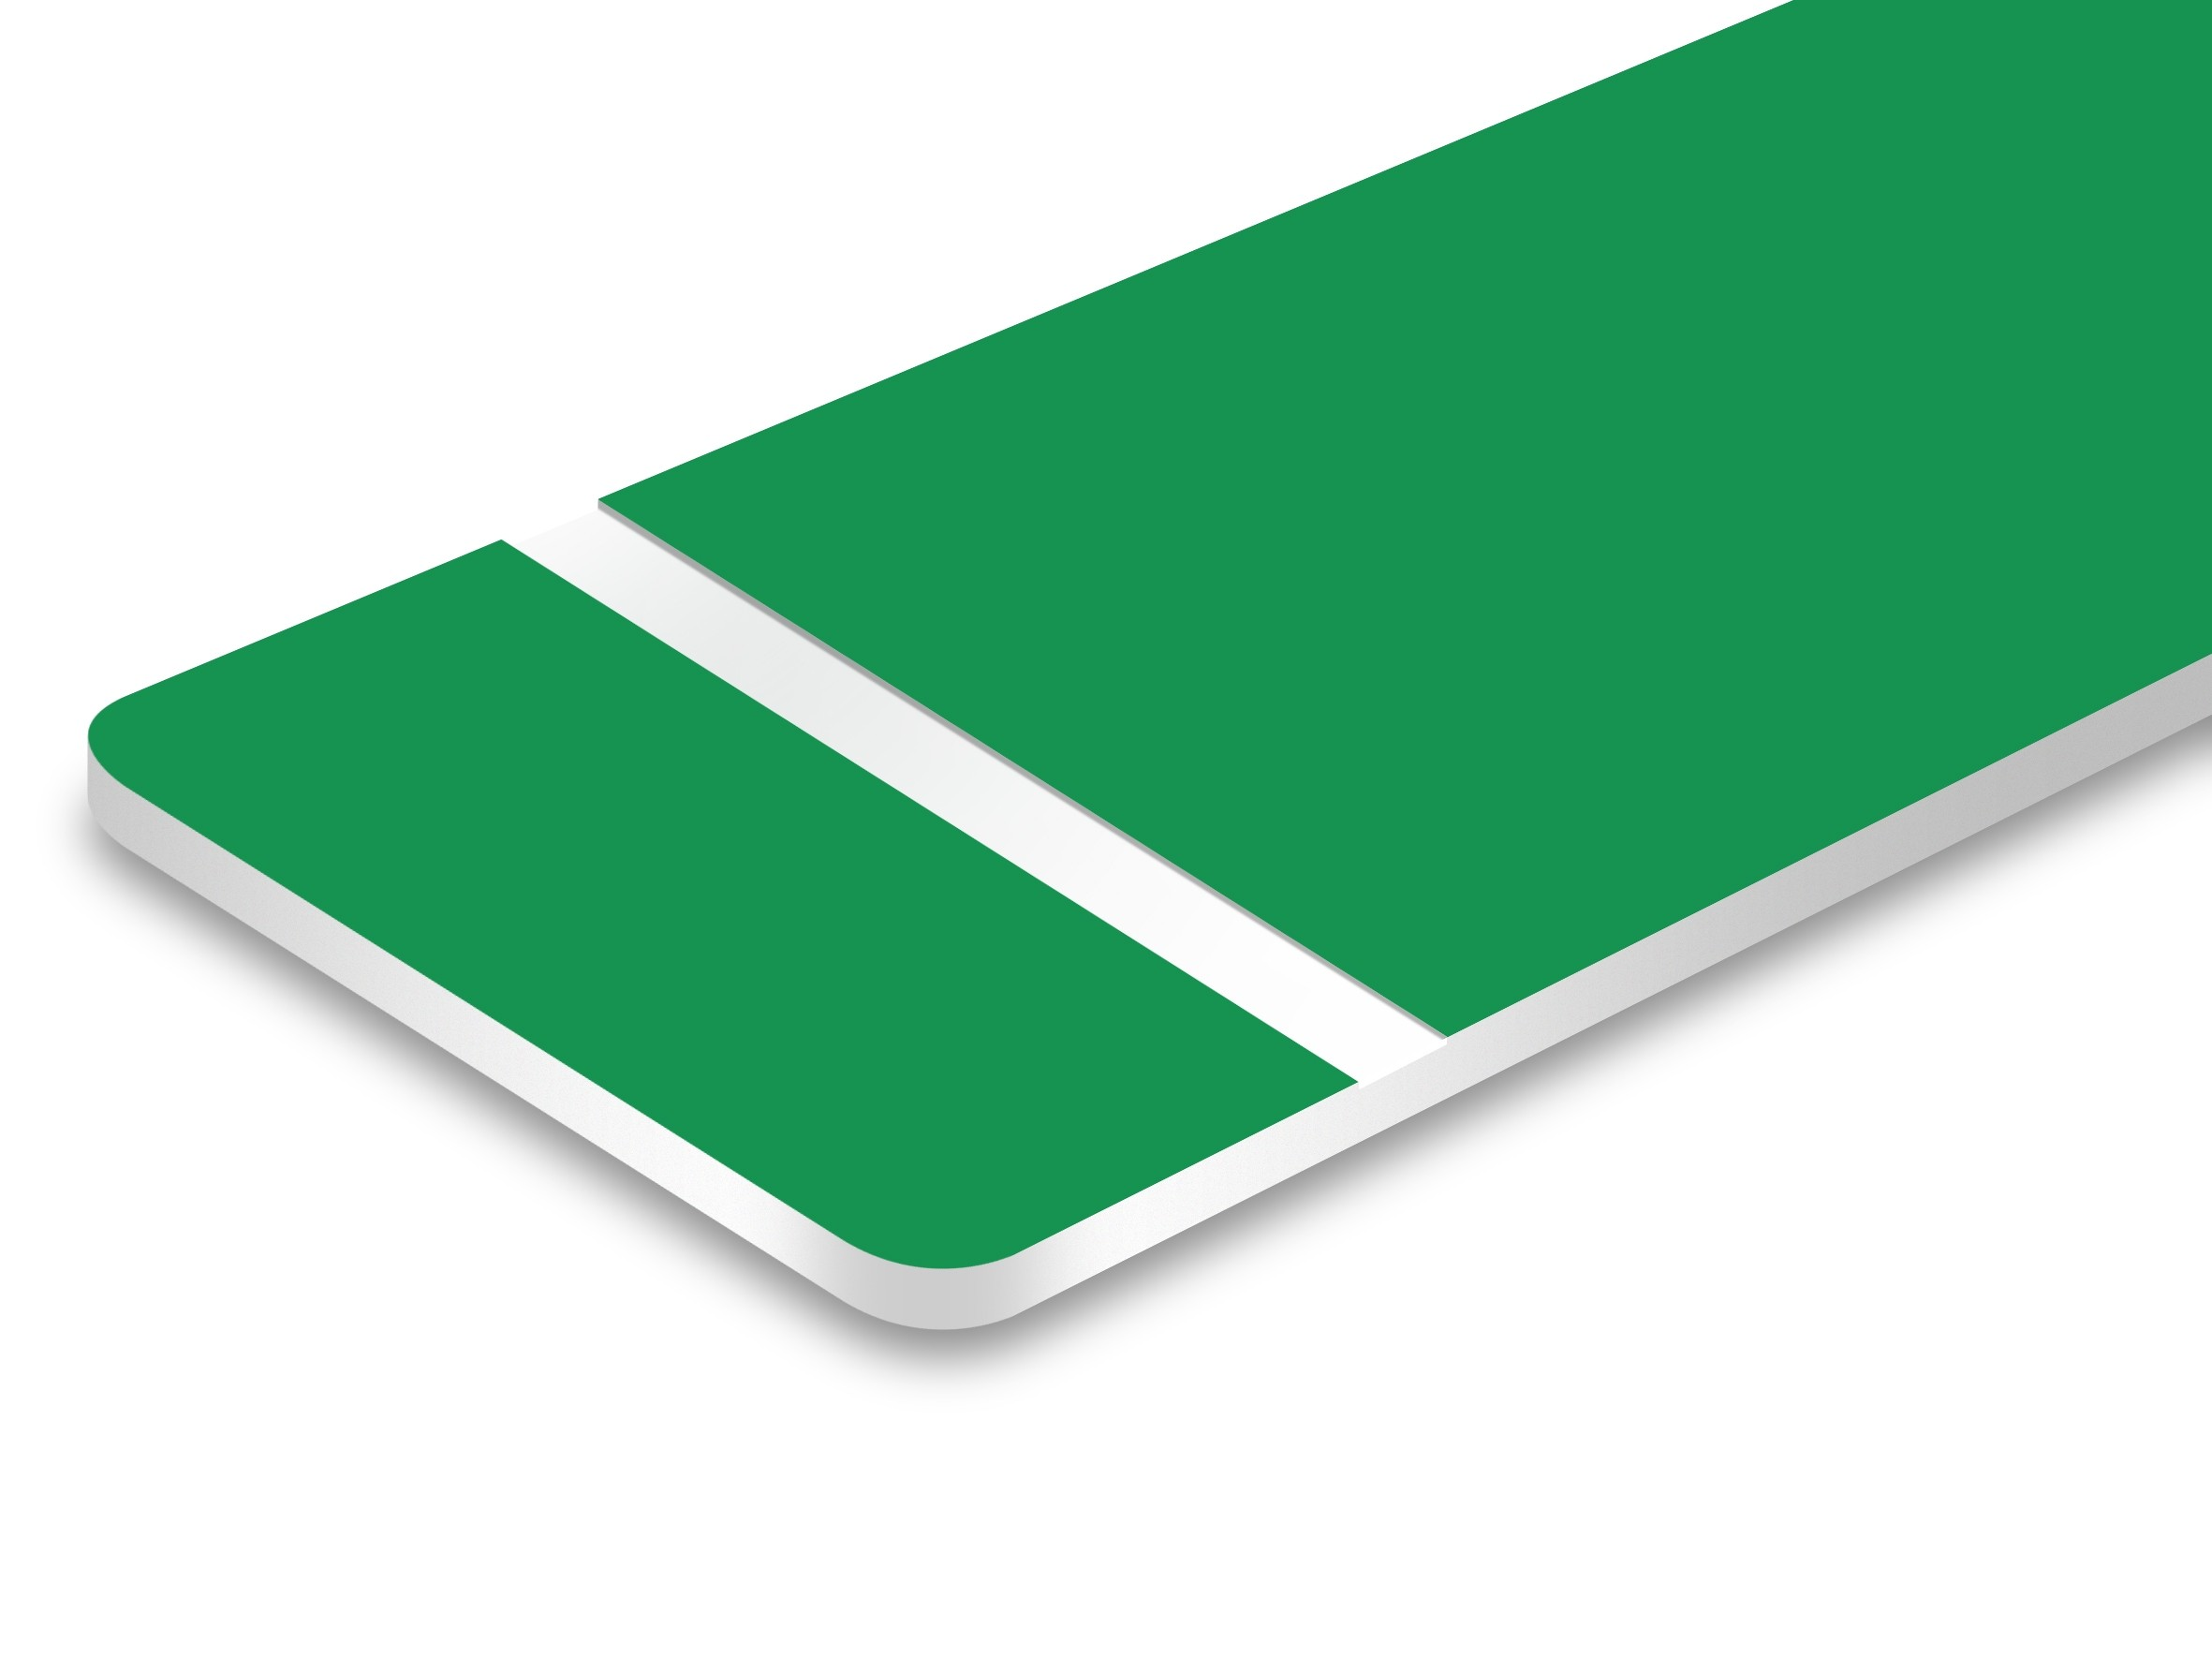 TroLase Ultra Matte Green/White 1.5mm